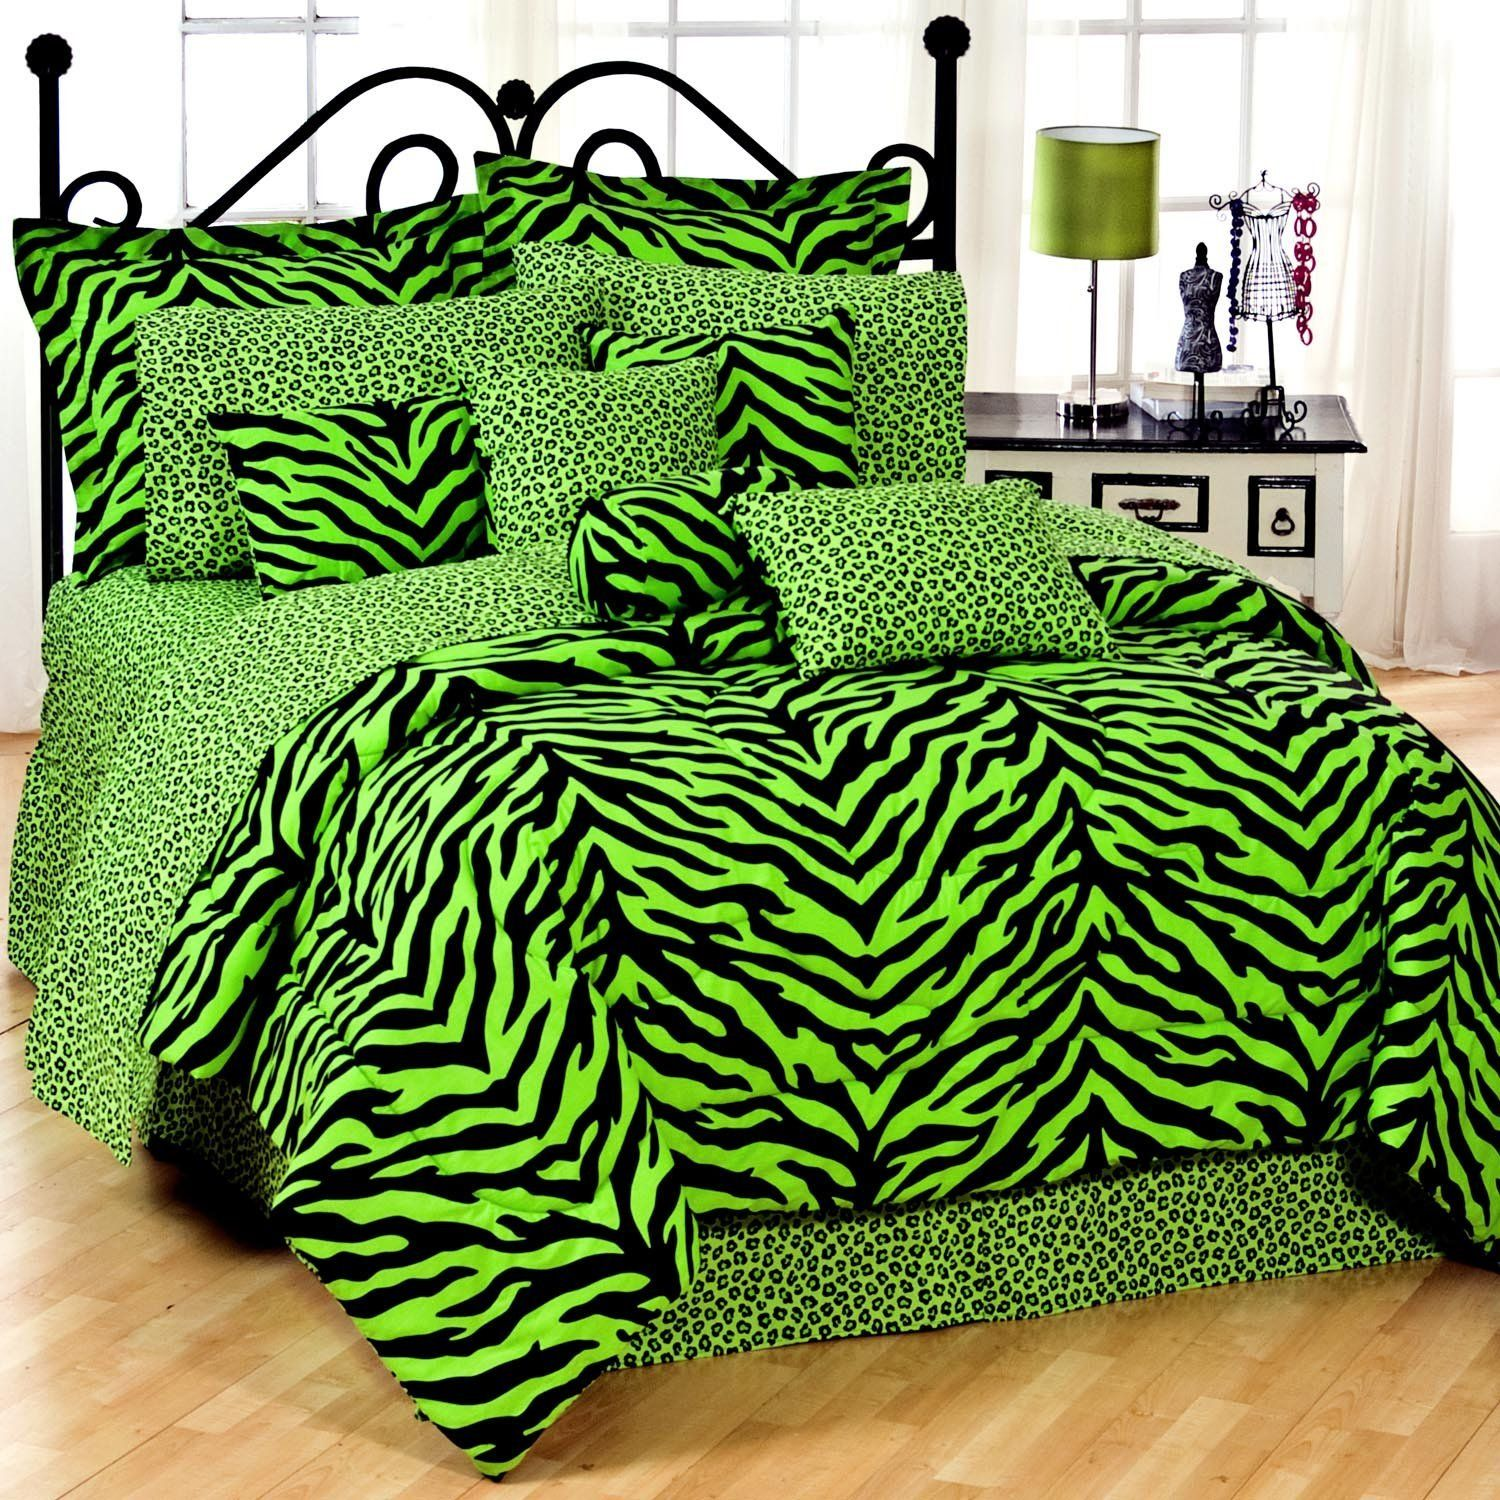 Lime green zebra bedding sets and accessories to you started